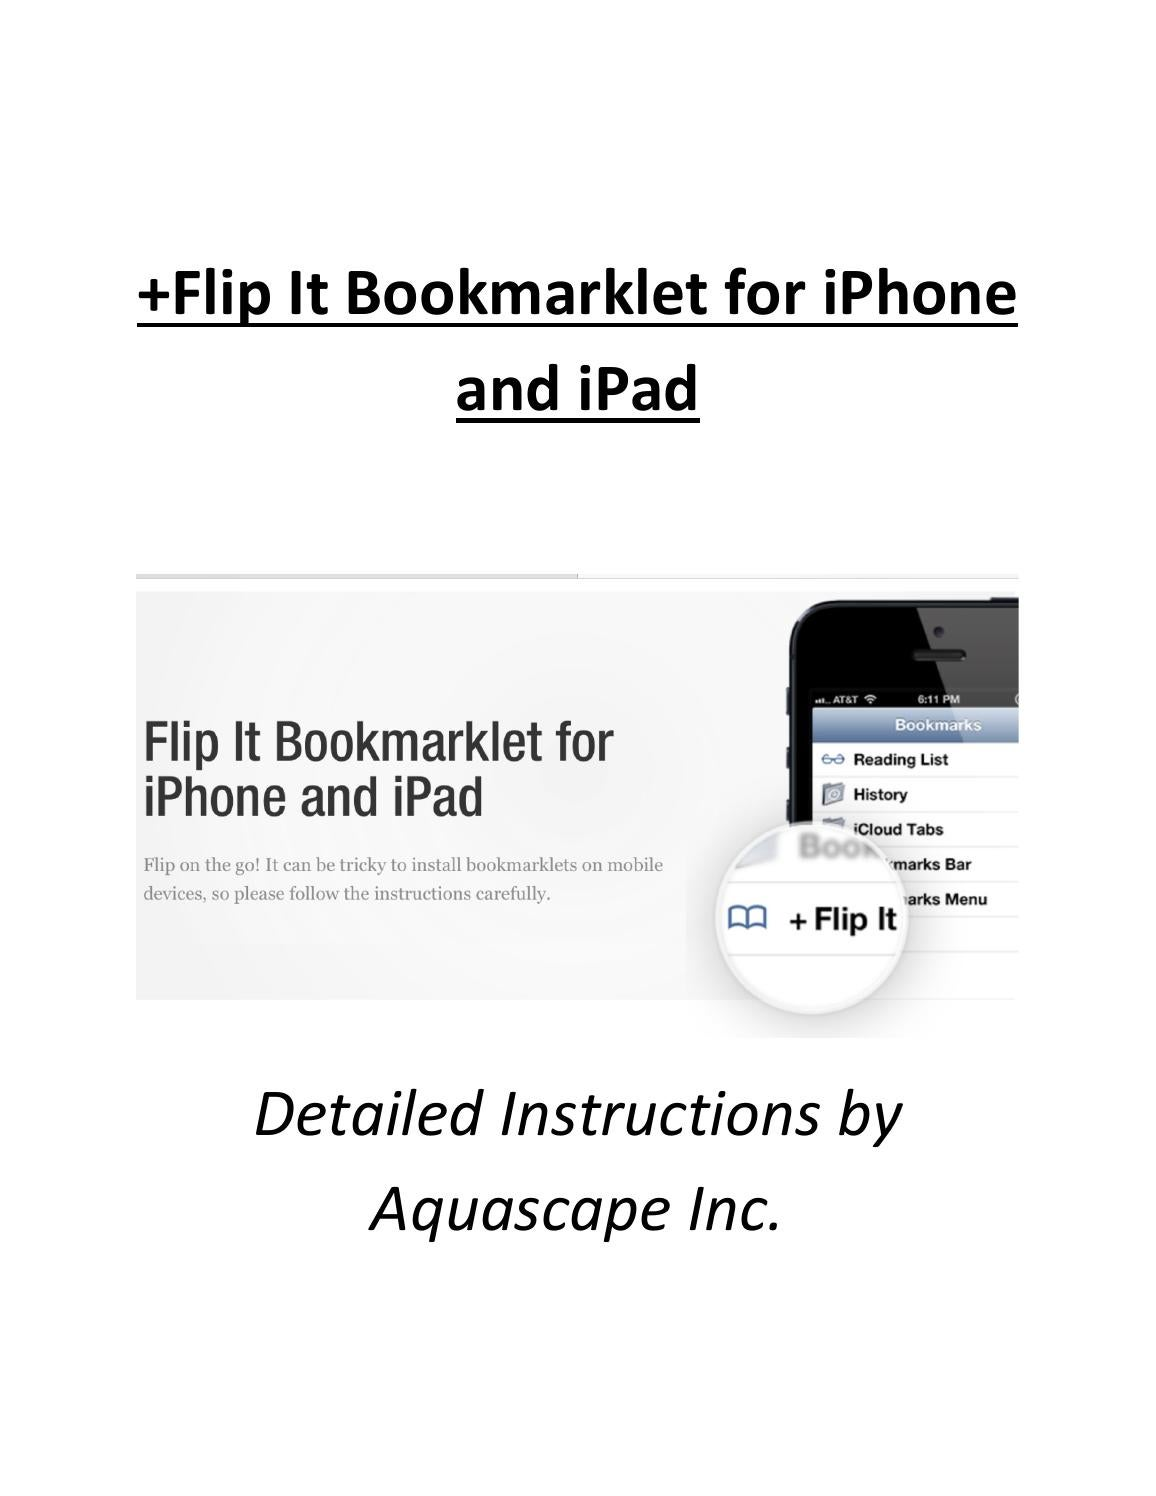 Aquascape's Adding the + Flip It Bookmarklet for iPhone and iPad Instructions